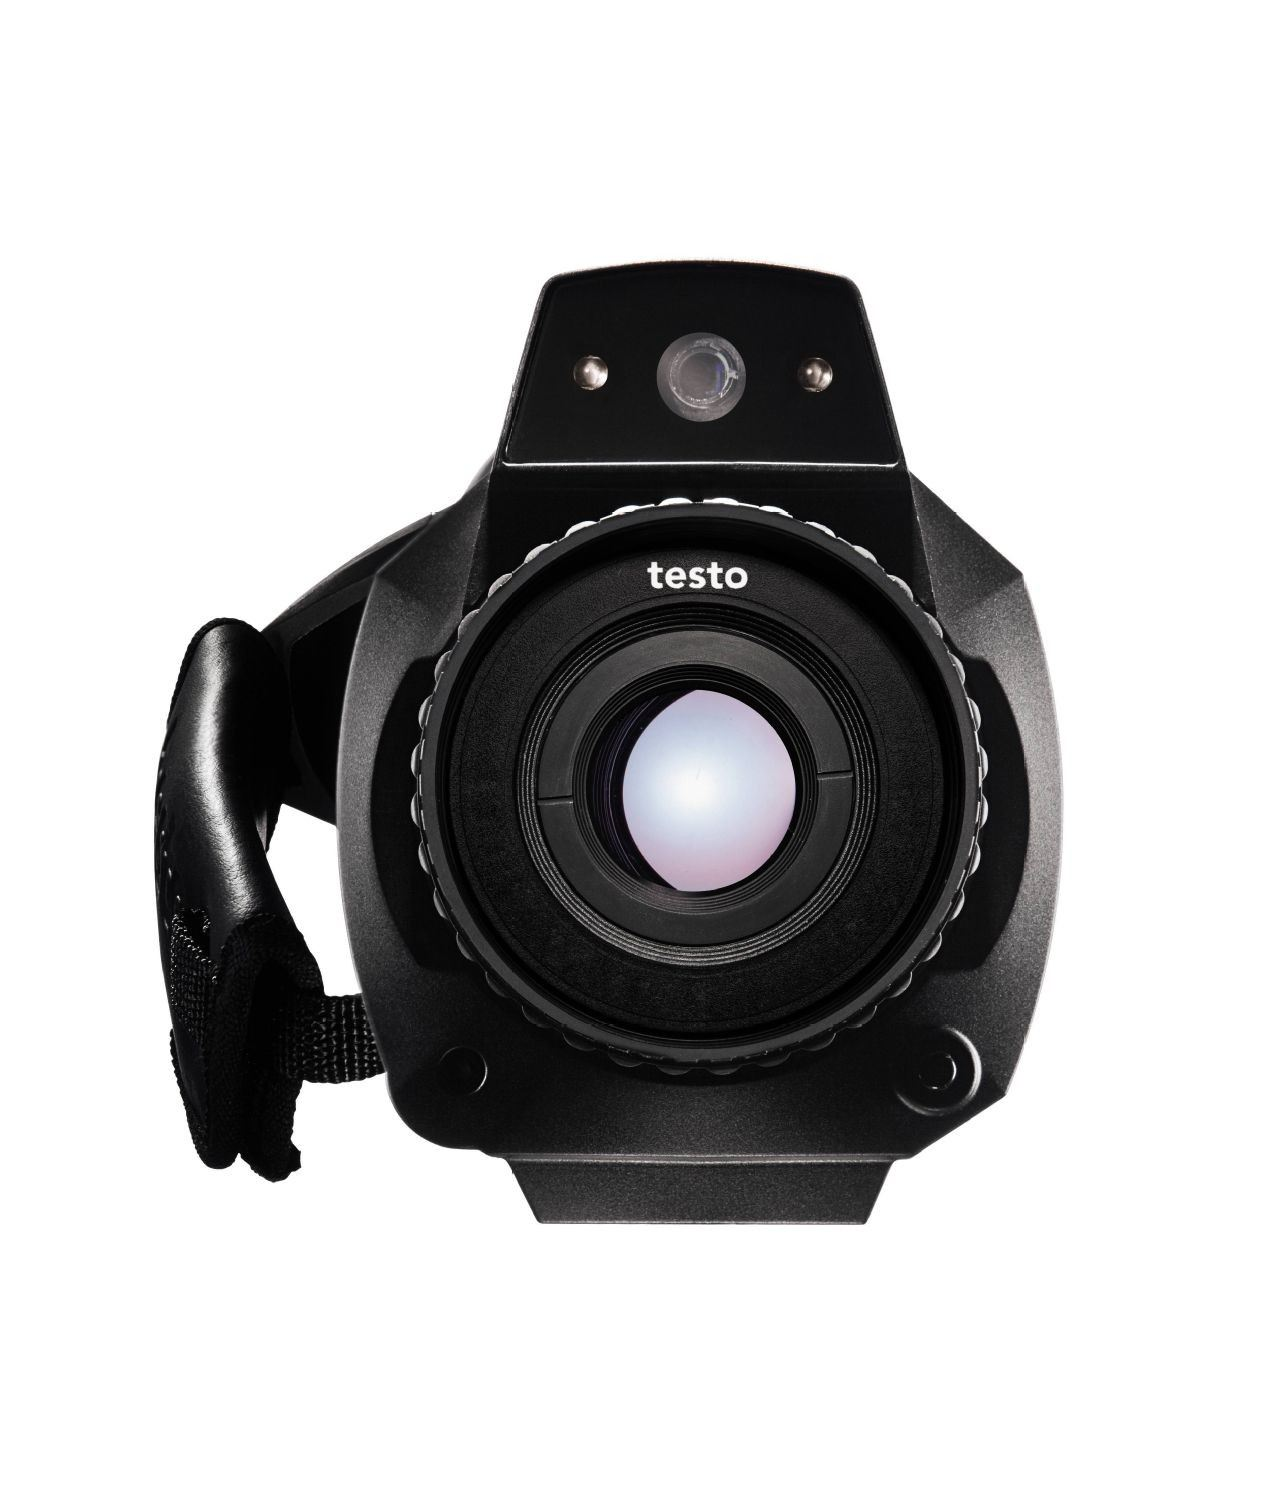 TESTO 885 Thermal Imager with One Lens